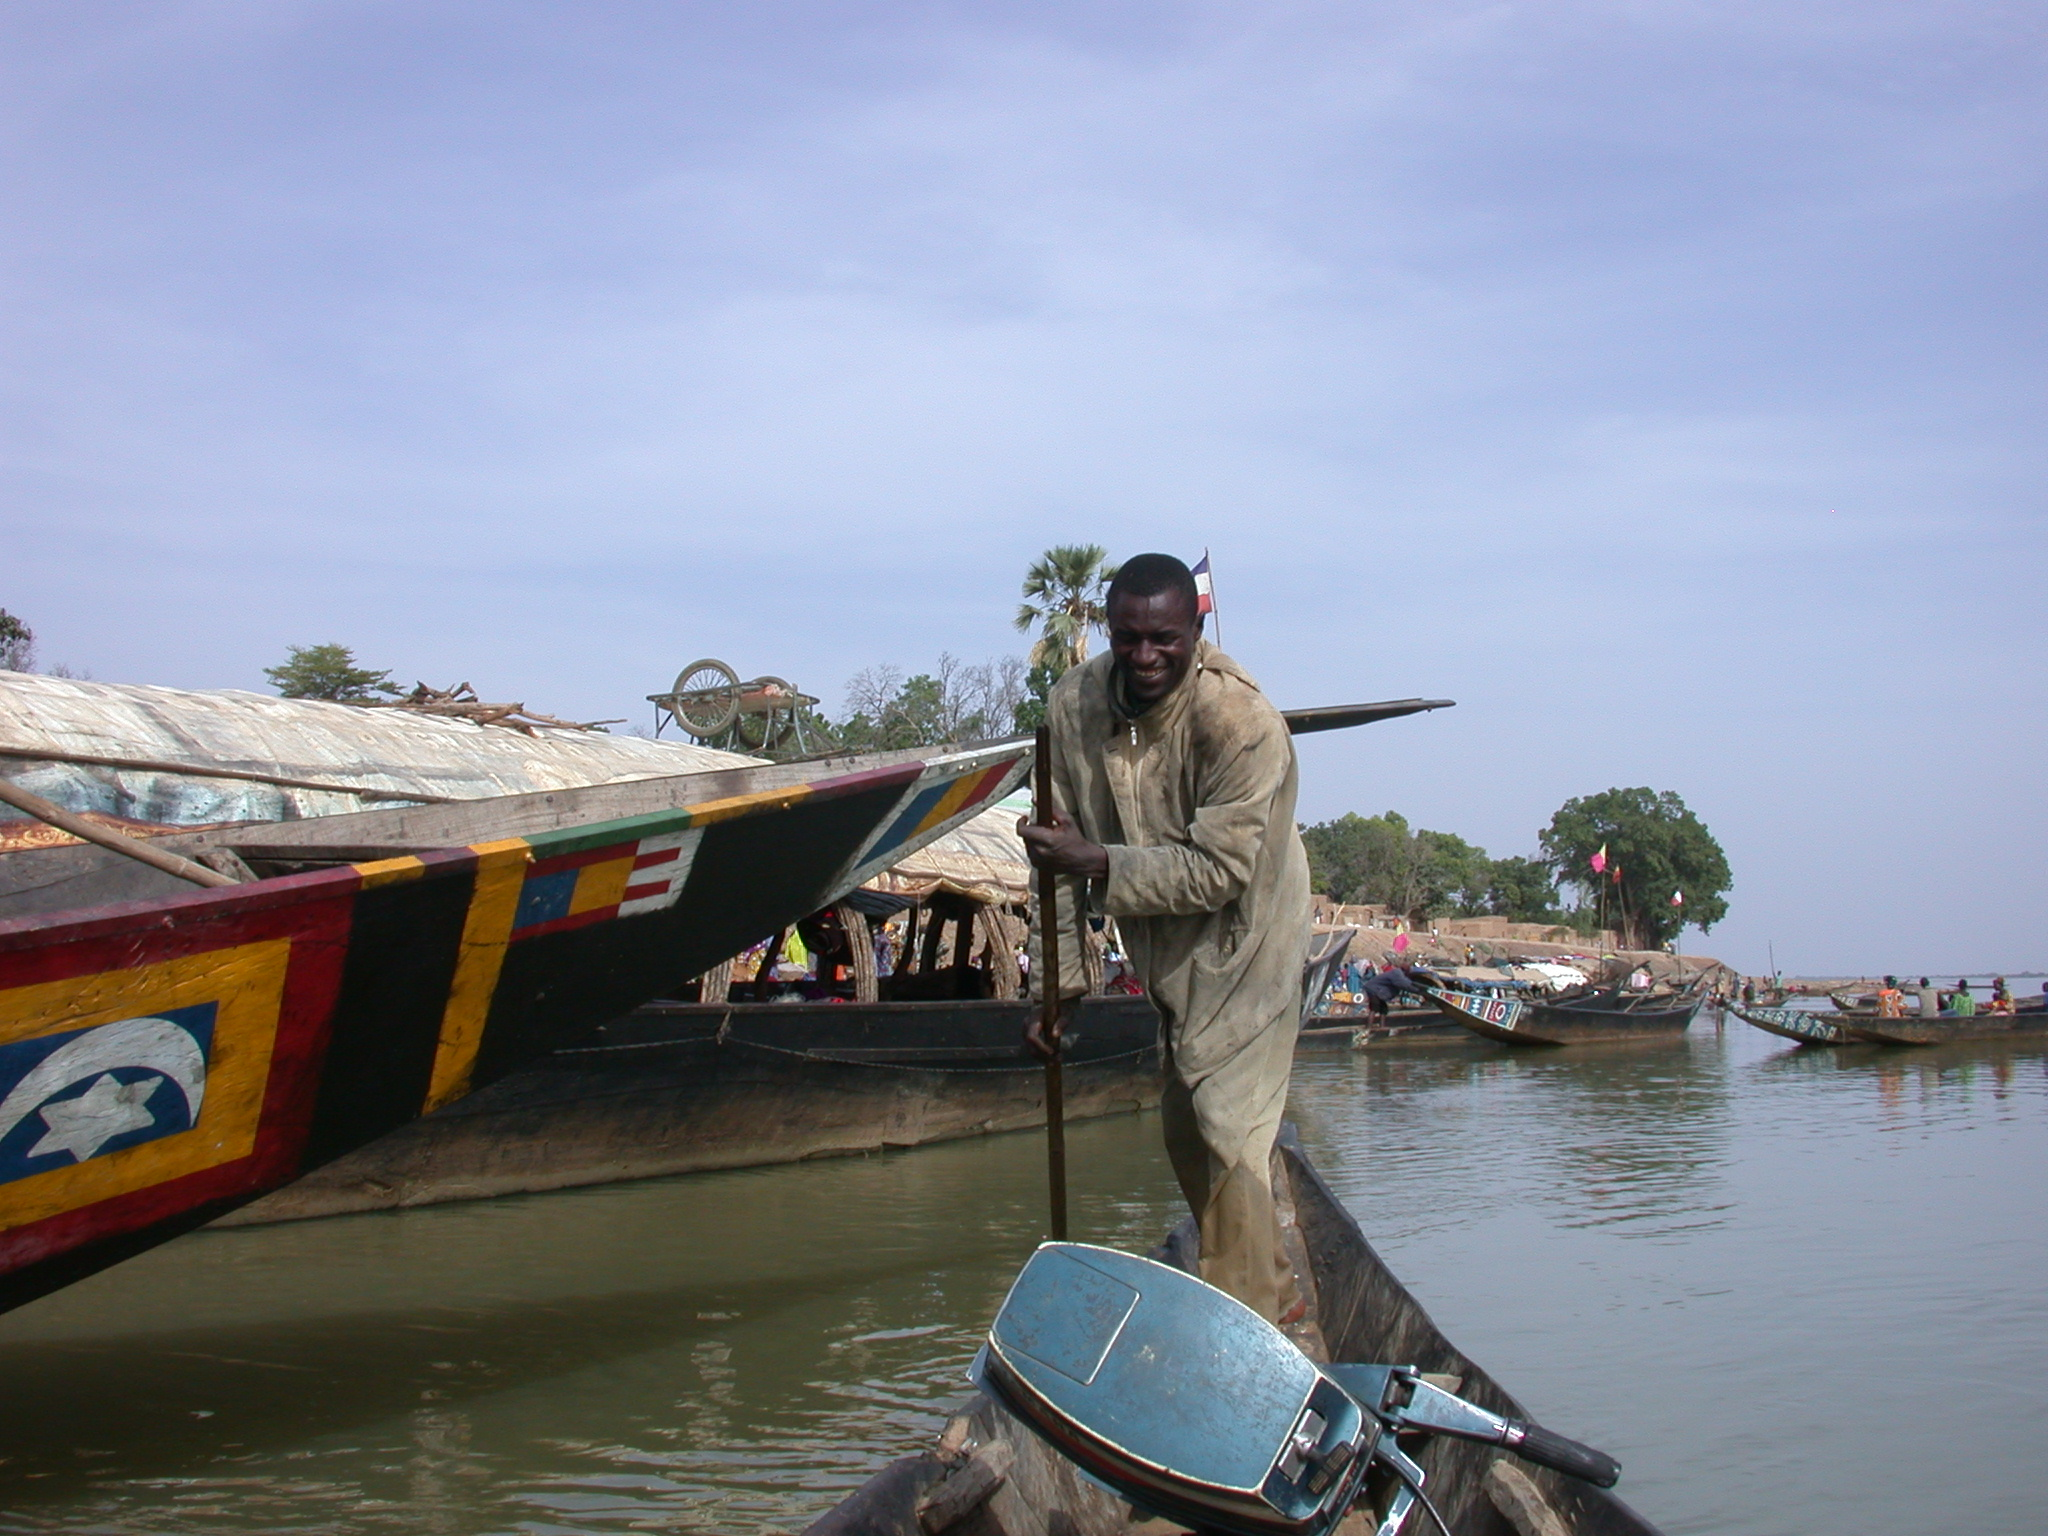 Pinasse Boat and Gondolier at Massina, Mali